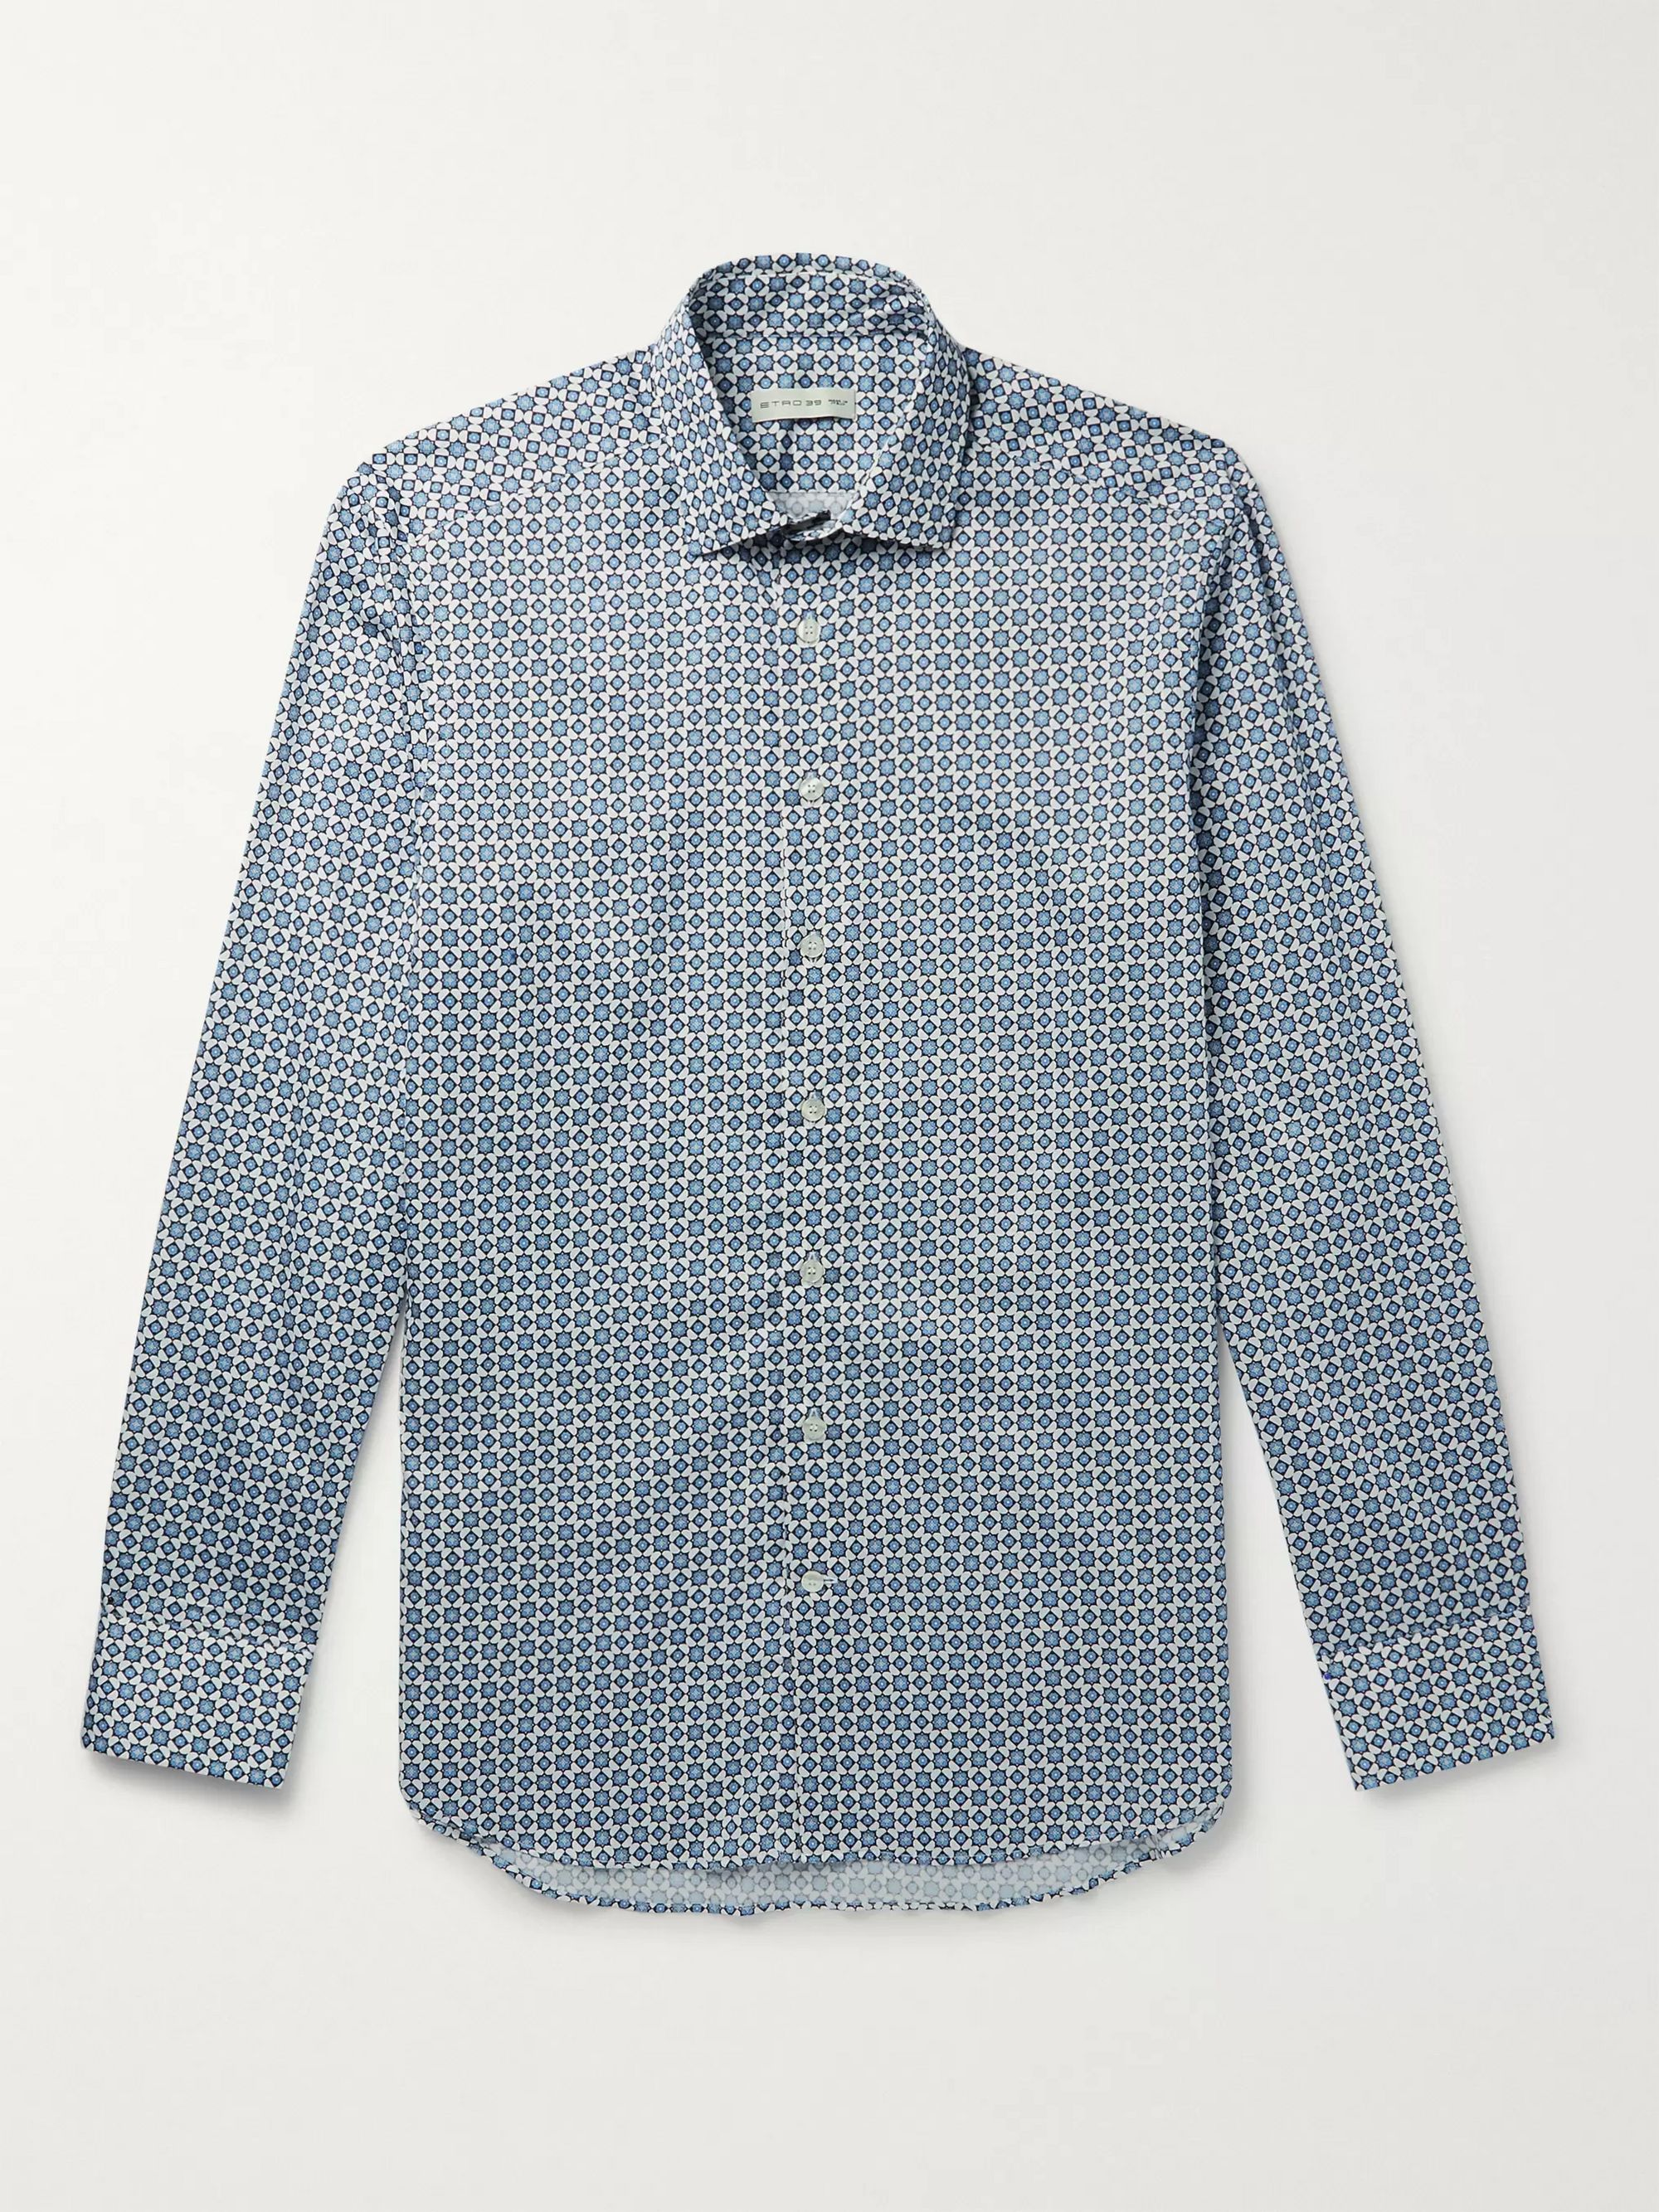 ETRO Cutaway-Collar Printed Cotton Shirt